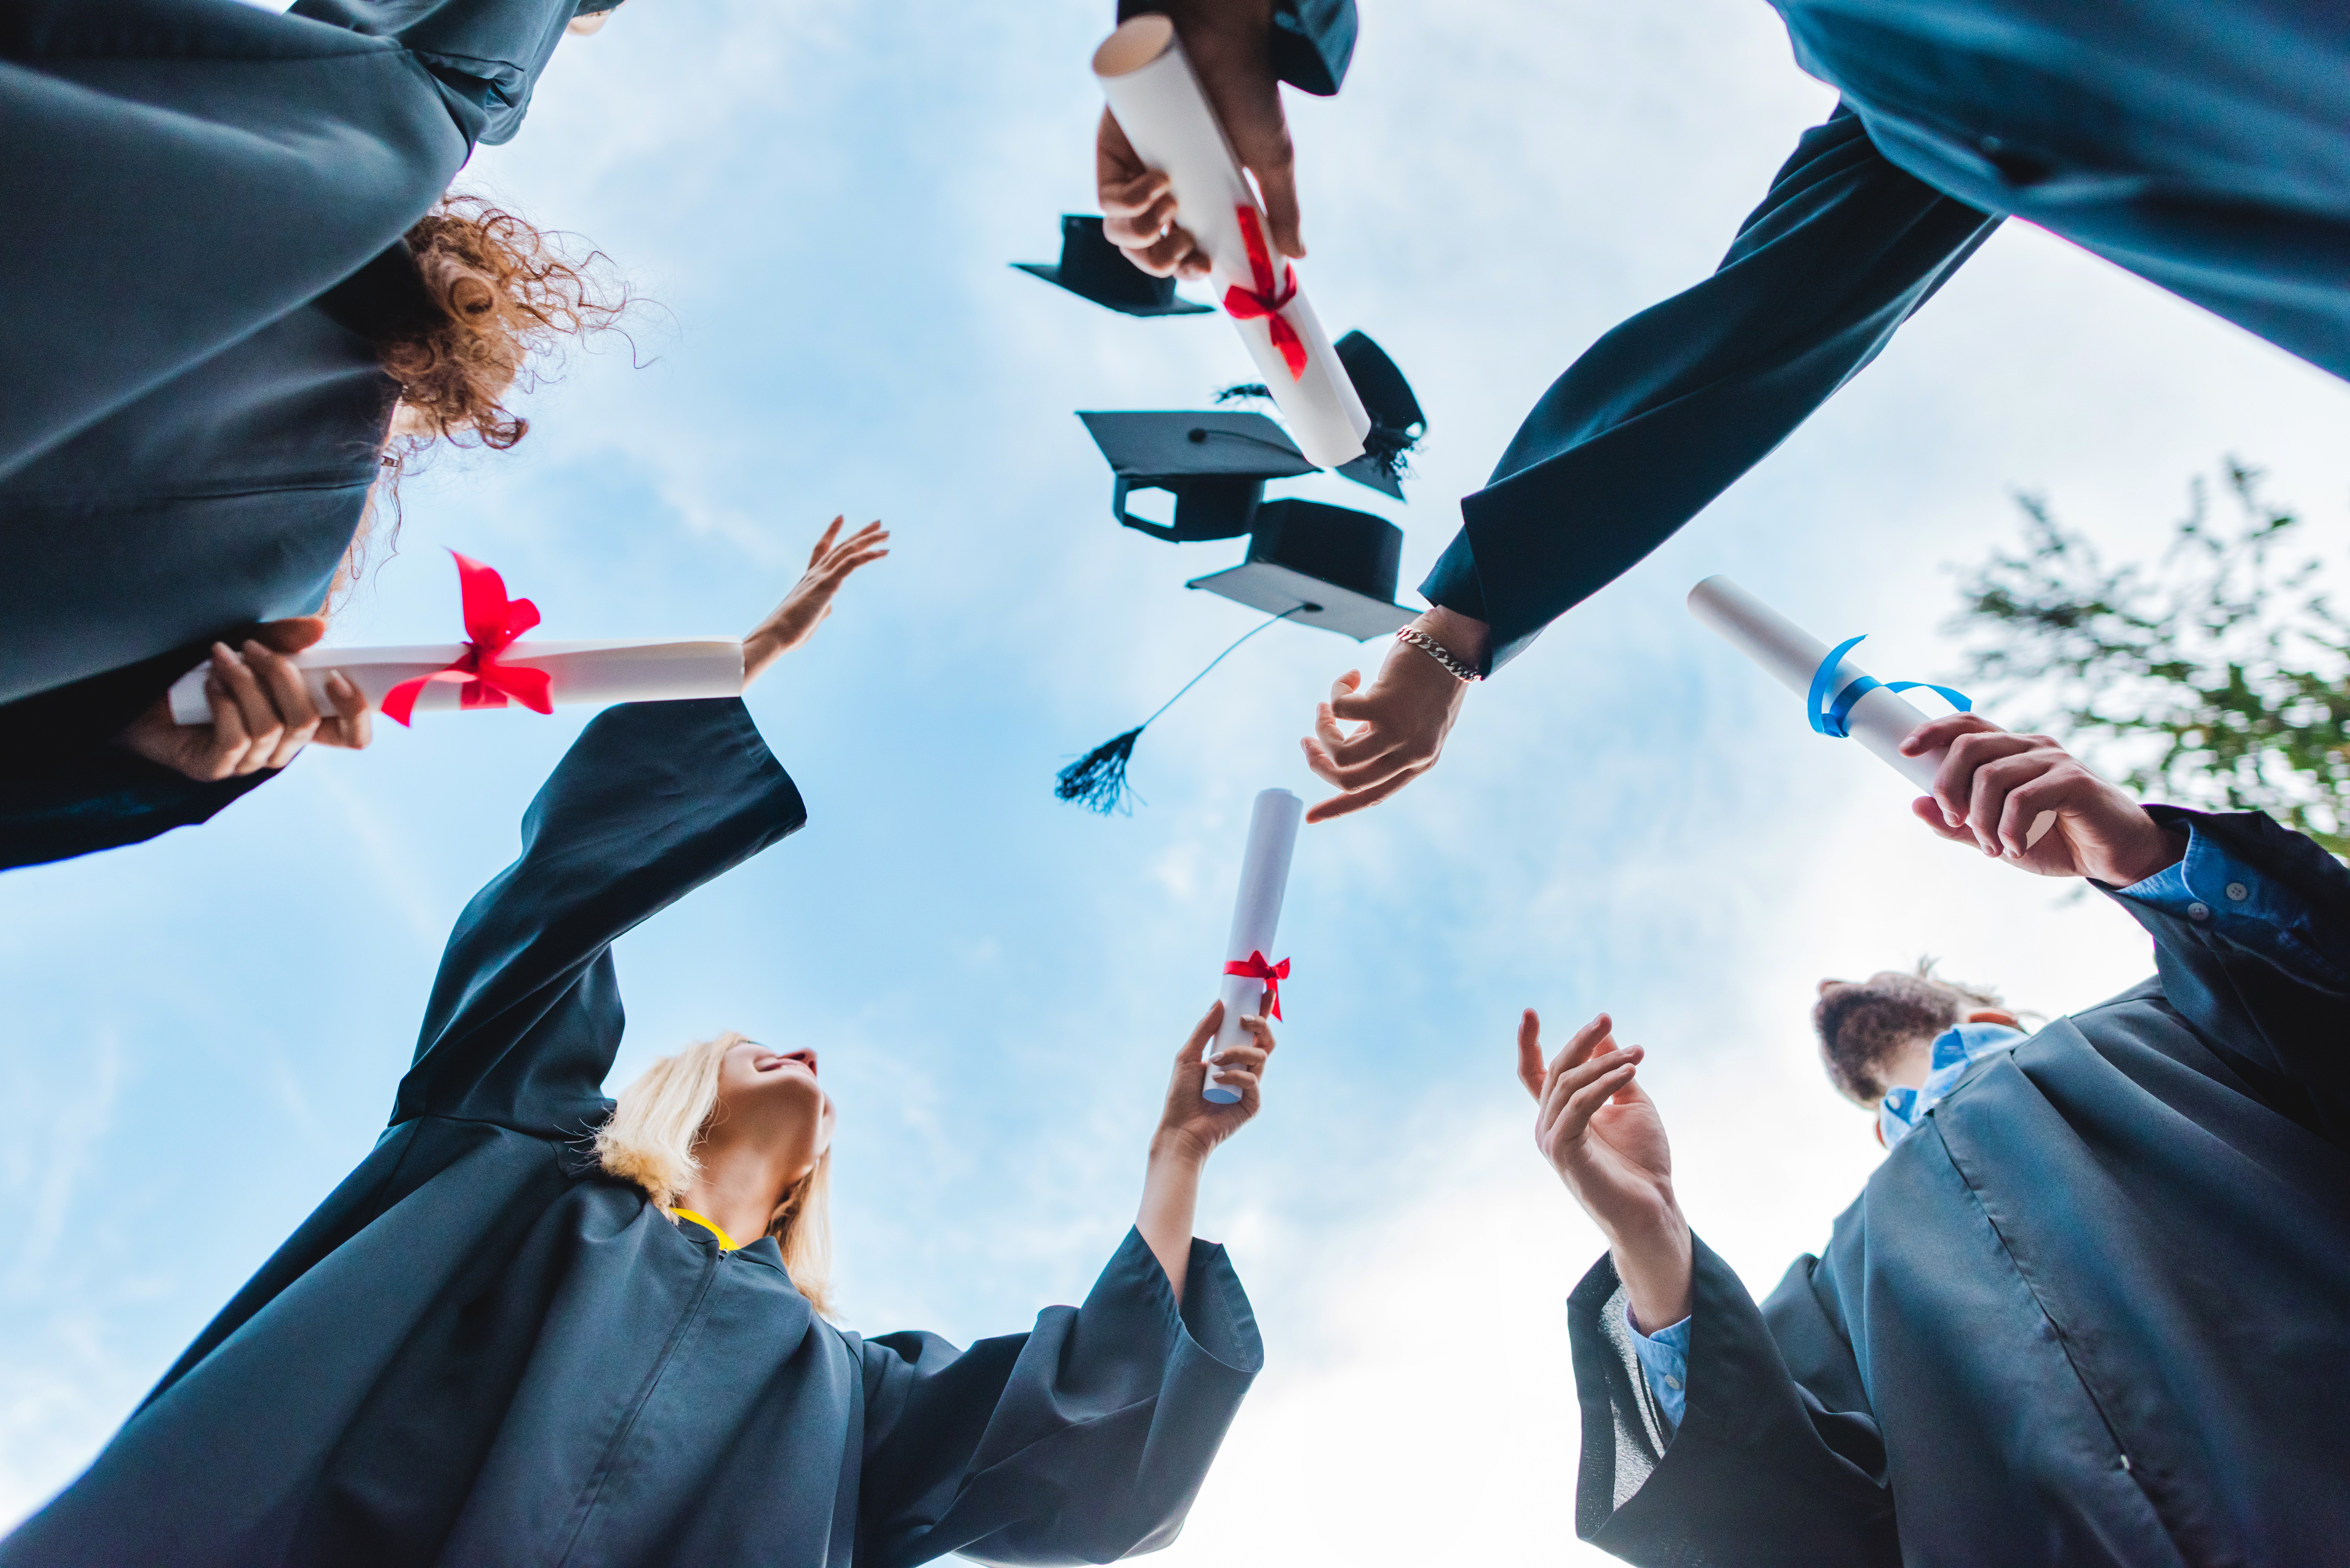 Approaching graduation? Make the most of your degree by choosing a career in recruitment